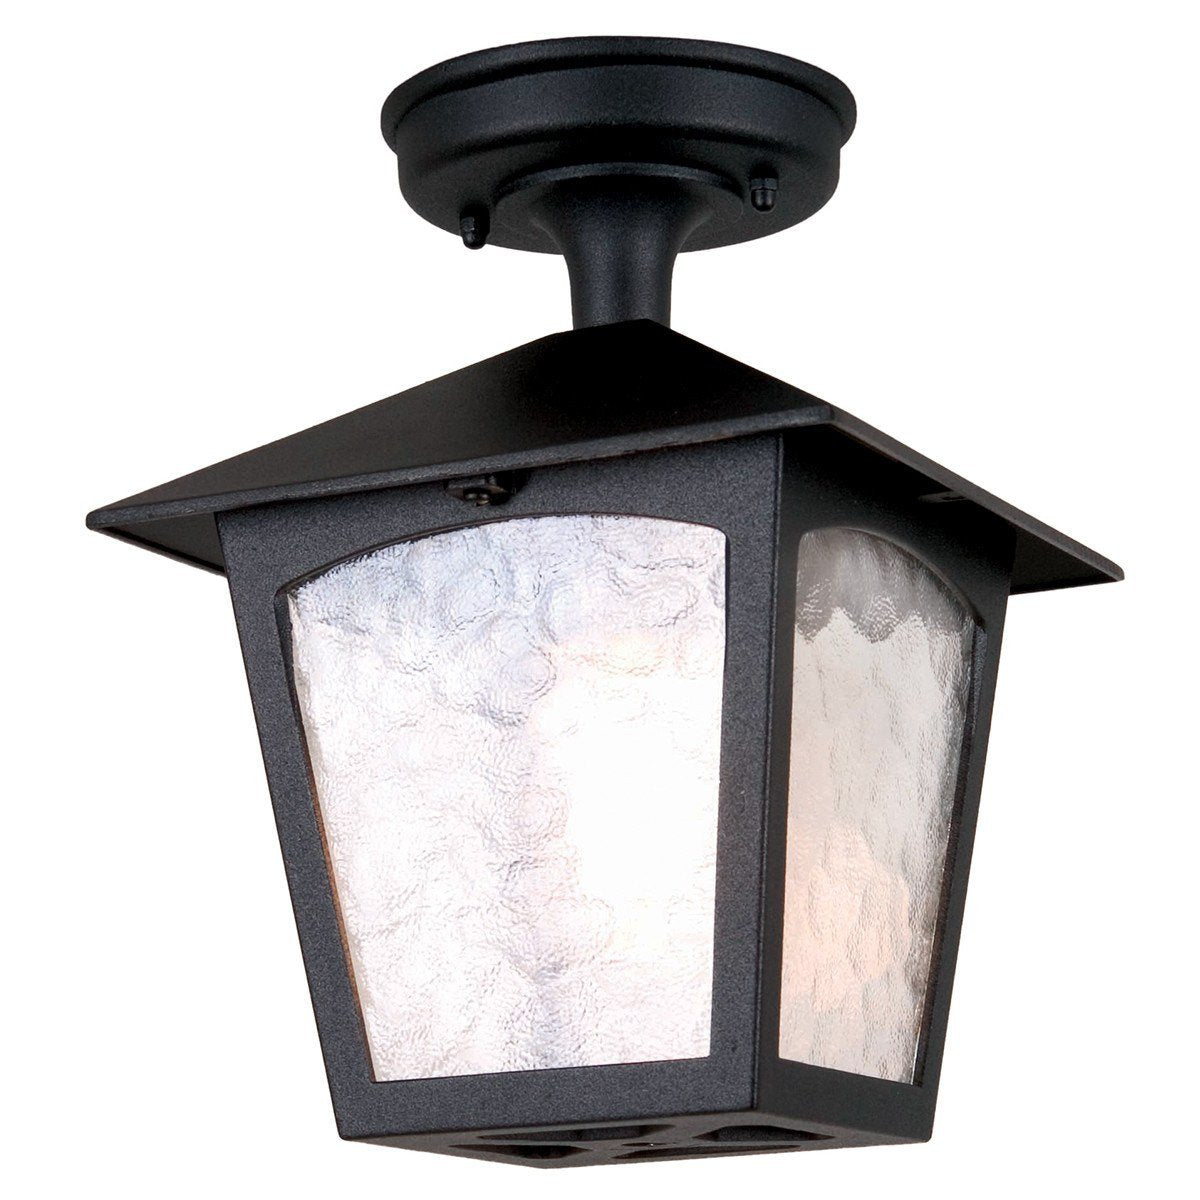 York Rigid Tube Lantern Black - London Lighting - 1